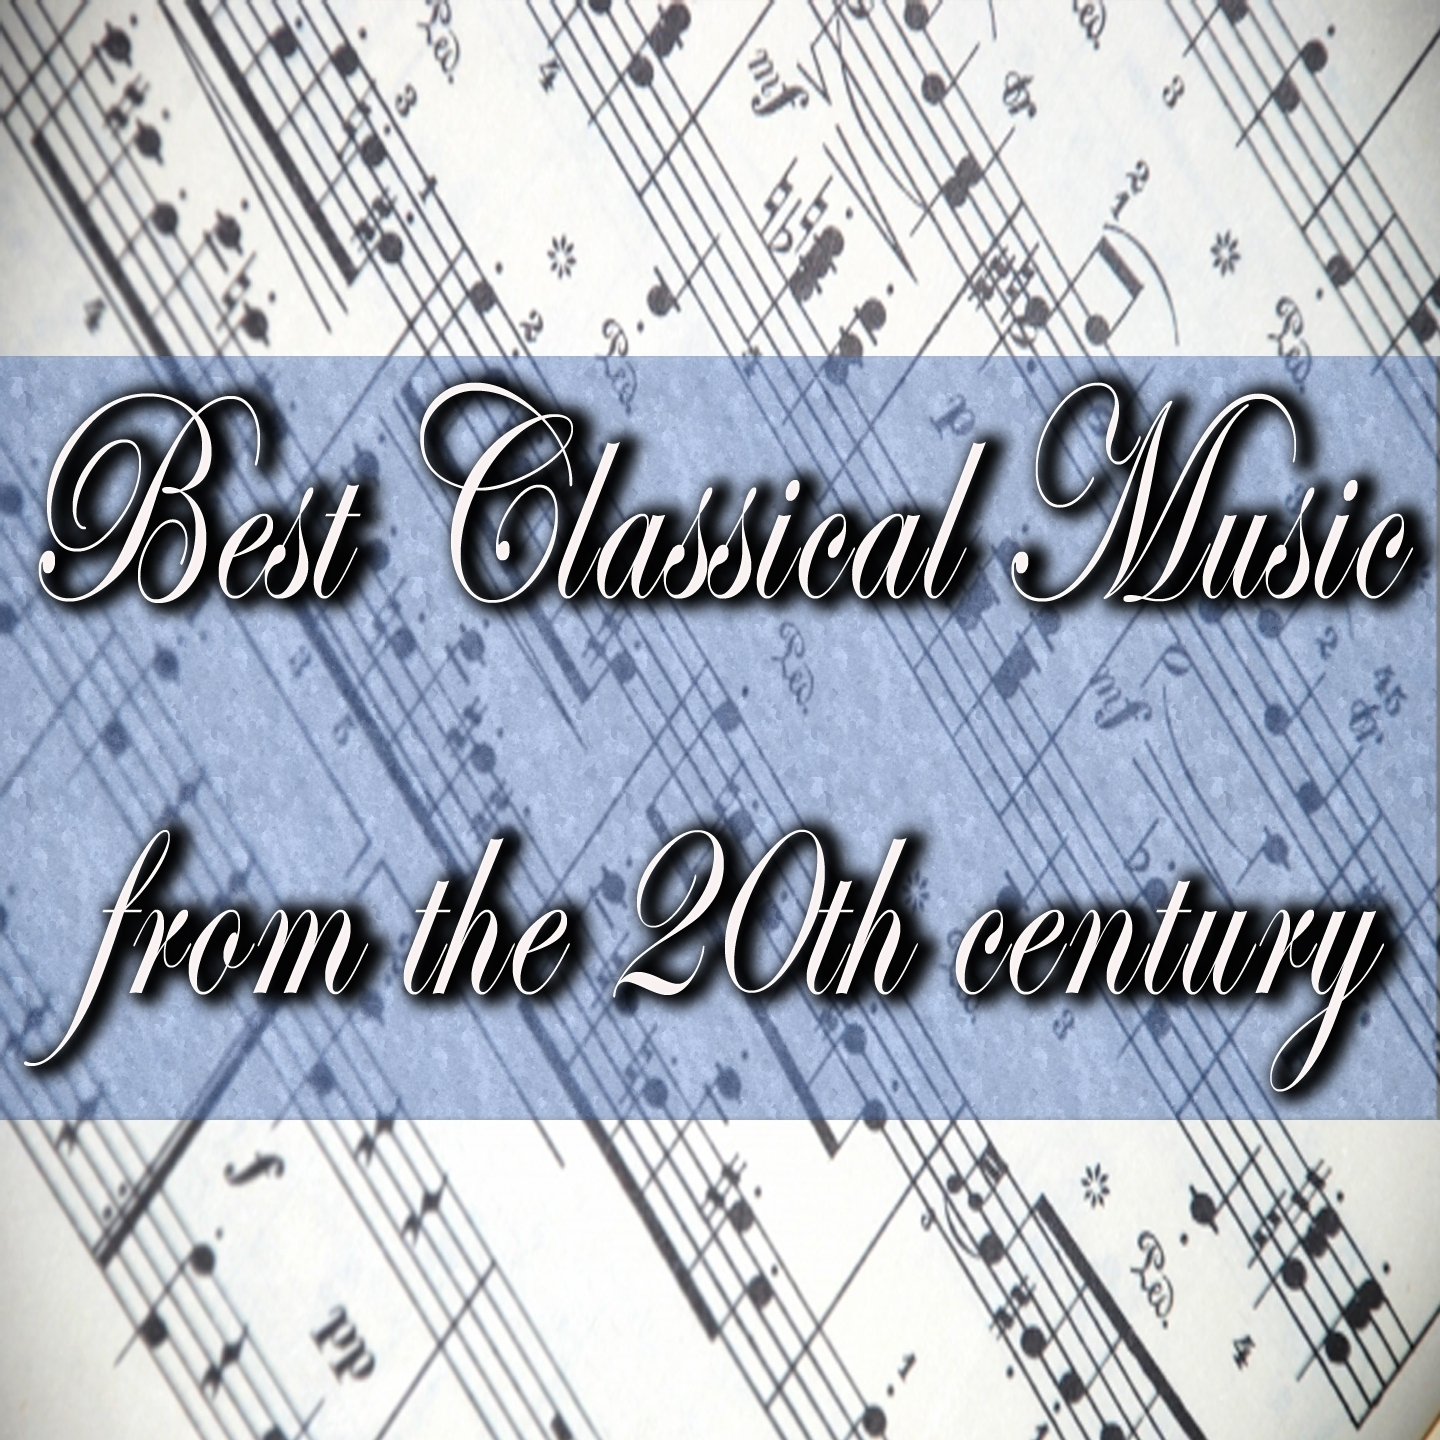 Best Classical Music from 20th Century